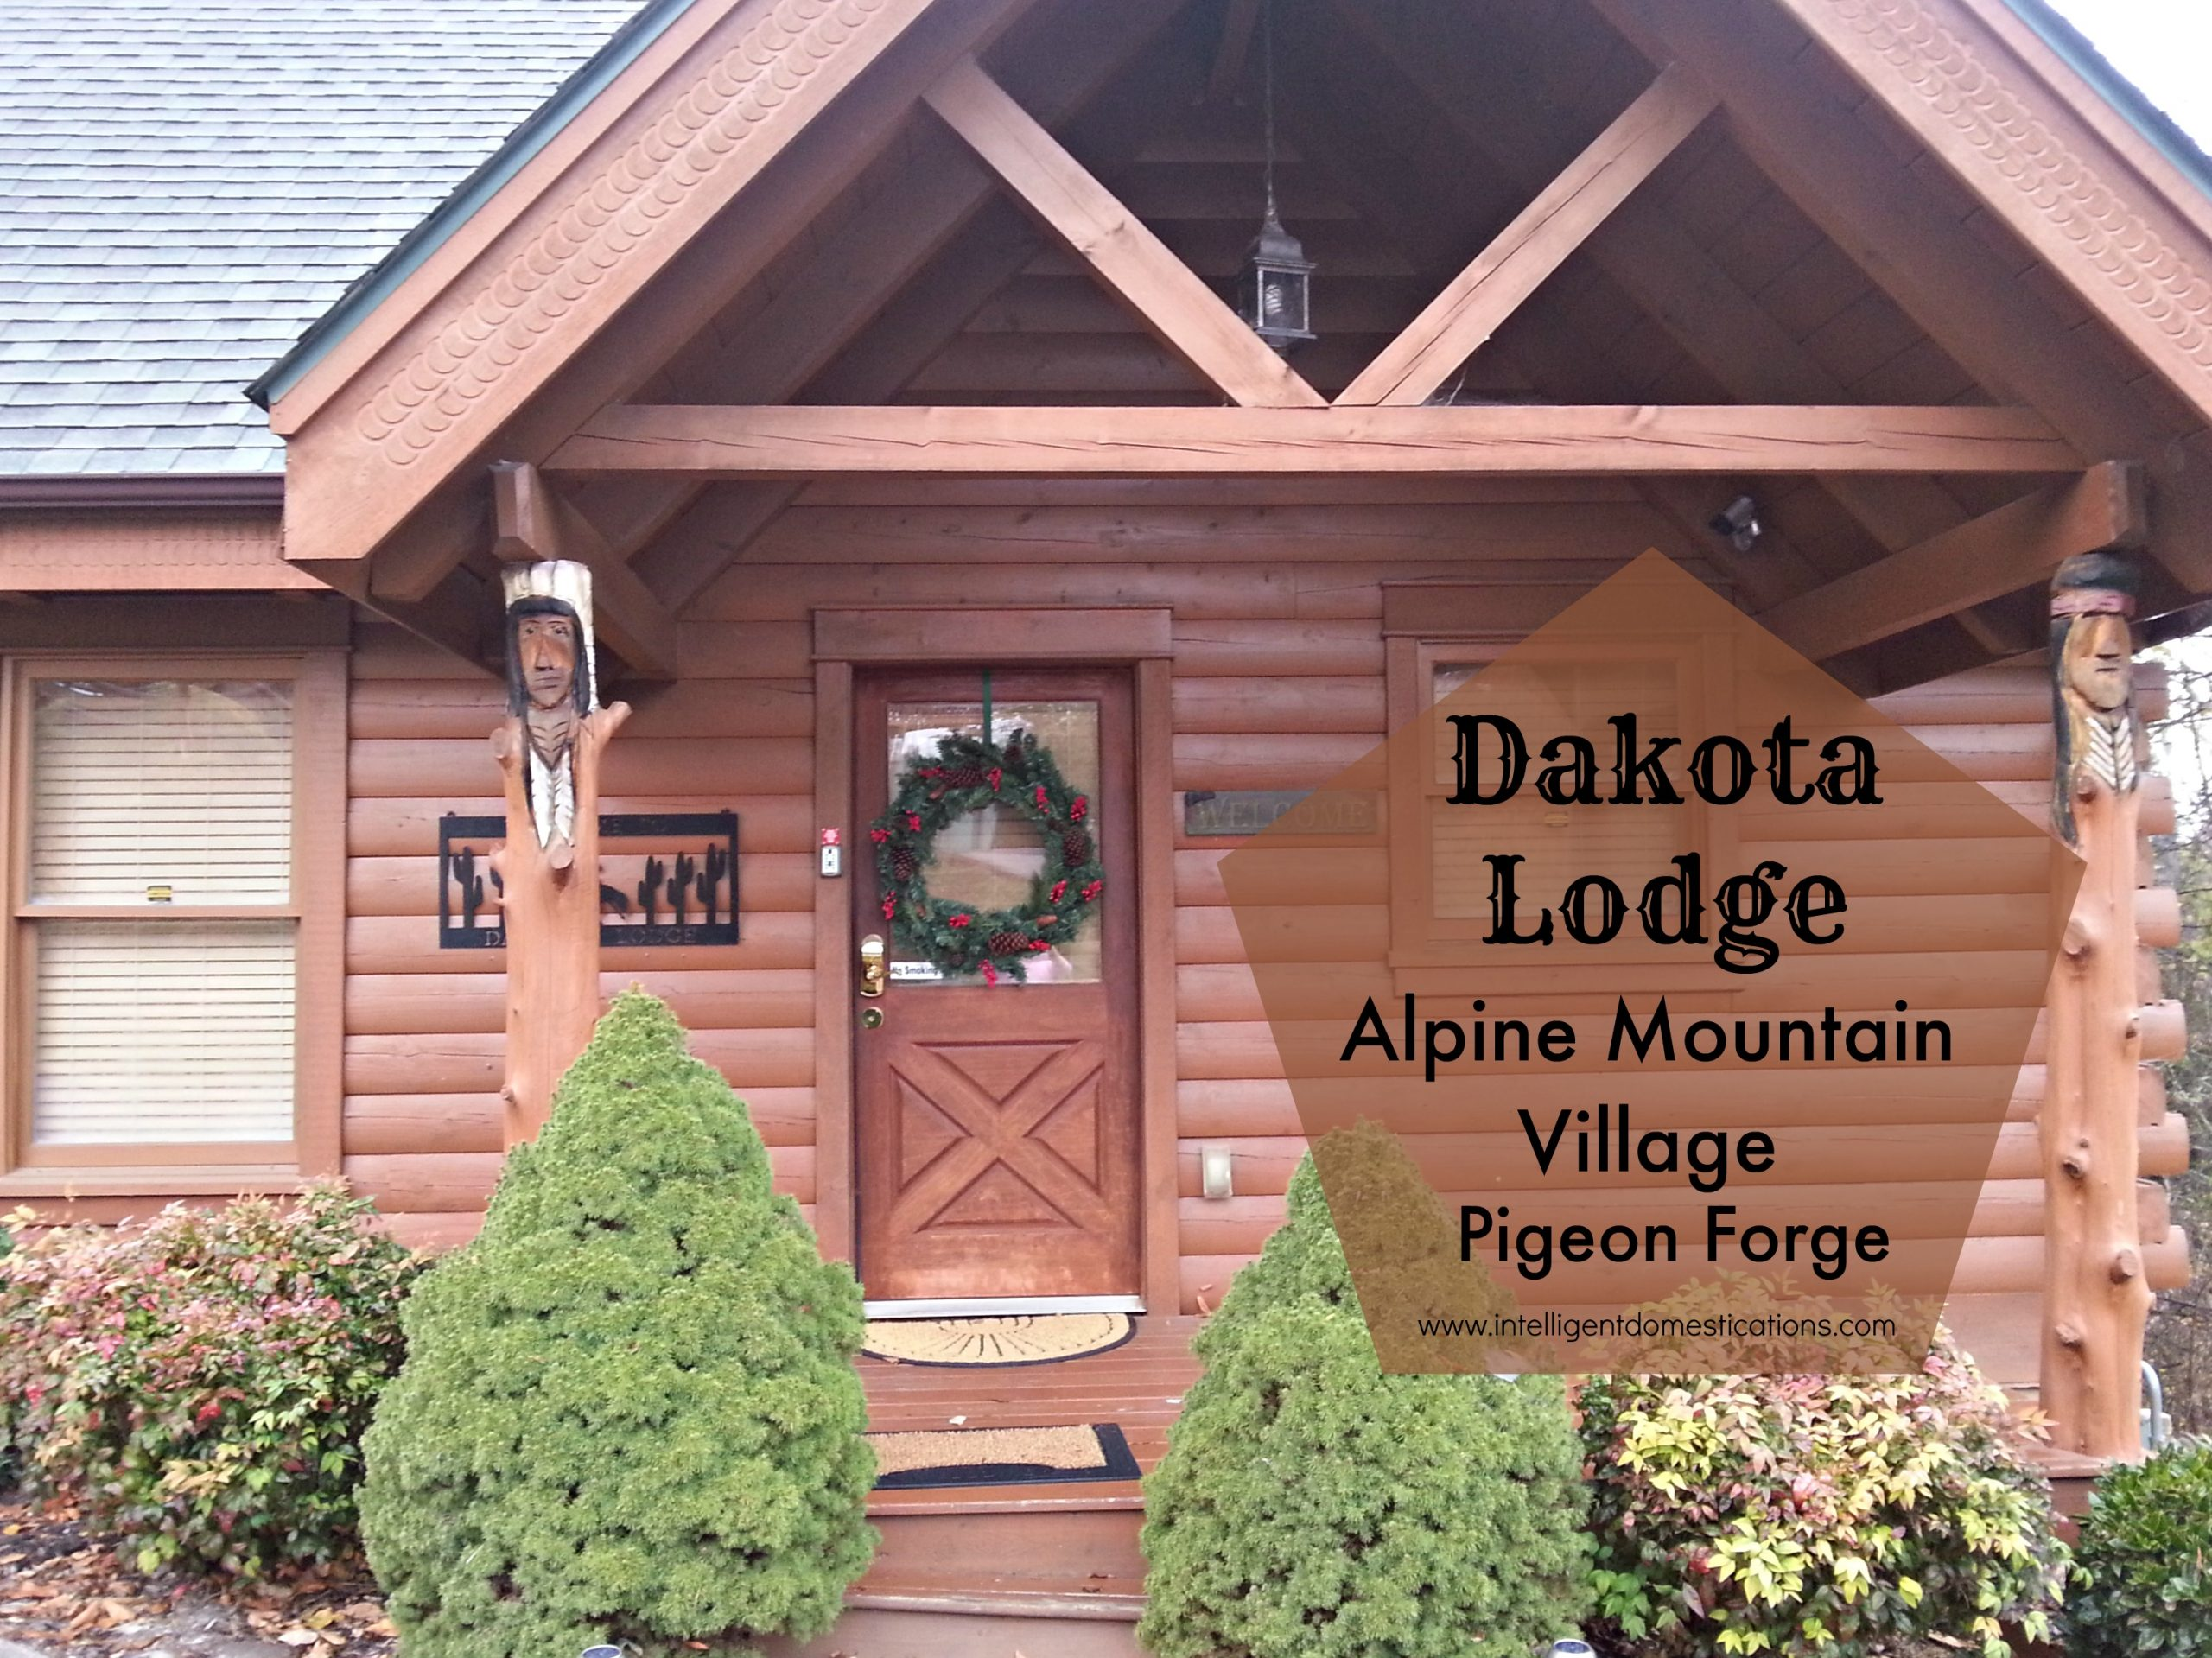 Dakota Lodge Alpin Mountain Village Pigeon Forge Tennessee Review